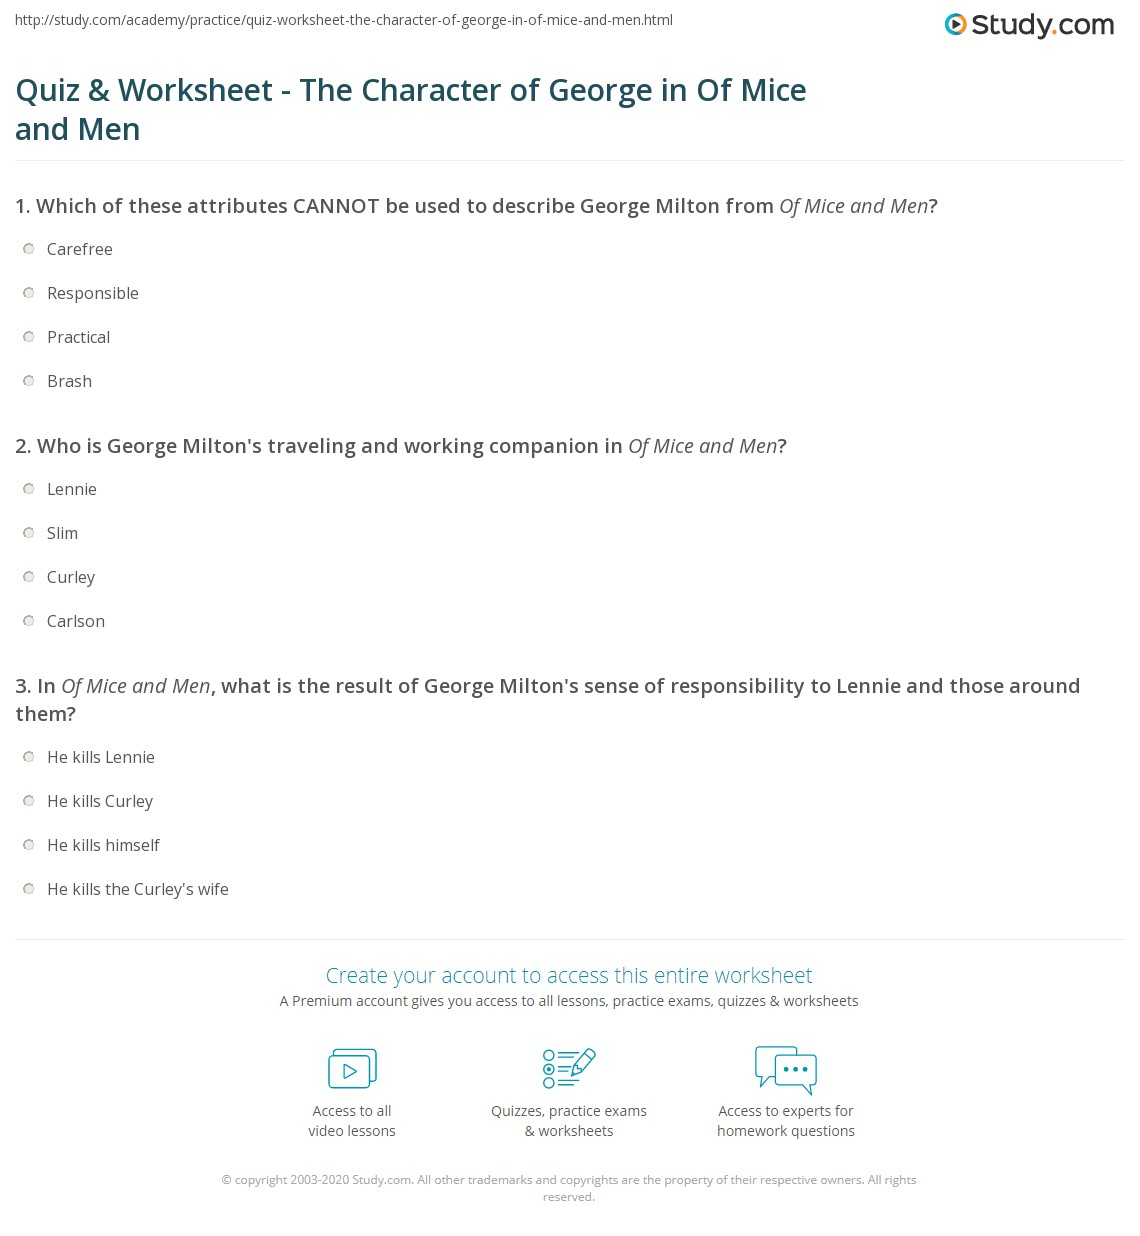 essay character personality traits essay of mice and men george  of mice and men george milton character analysis essay of mice and men george milton character